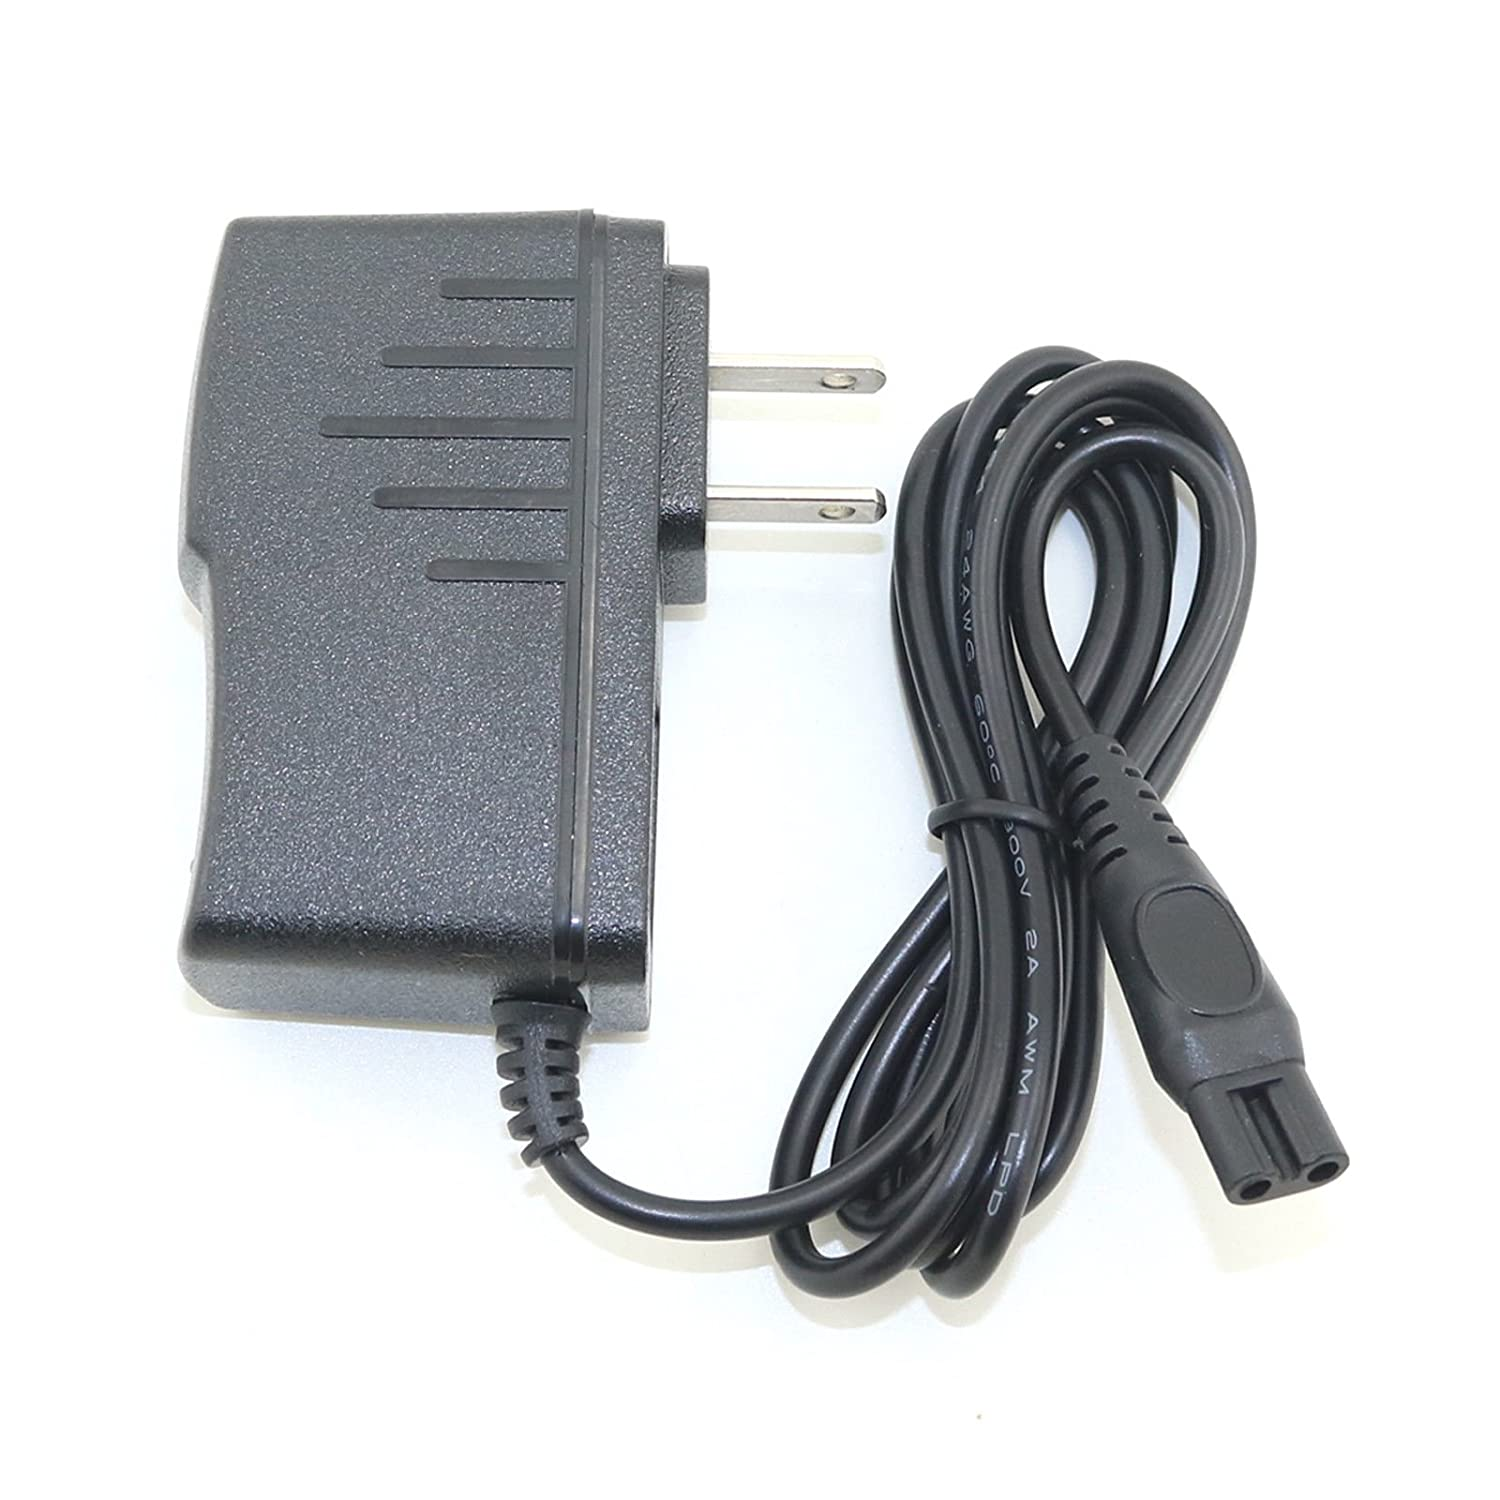 Antoble 15V AC Adapter for Philips Norelco Series Razor HQ8500 HQ8505 HQ9170 HQ9160 HQ6070 HQ6075 HQ6090 AT875/41 AT895 AT875 Shavers anttrades